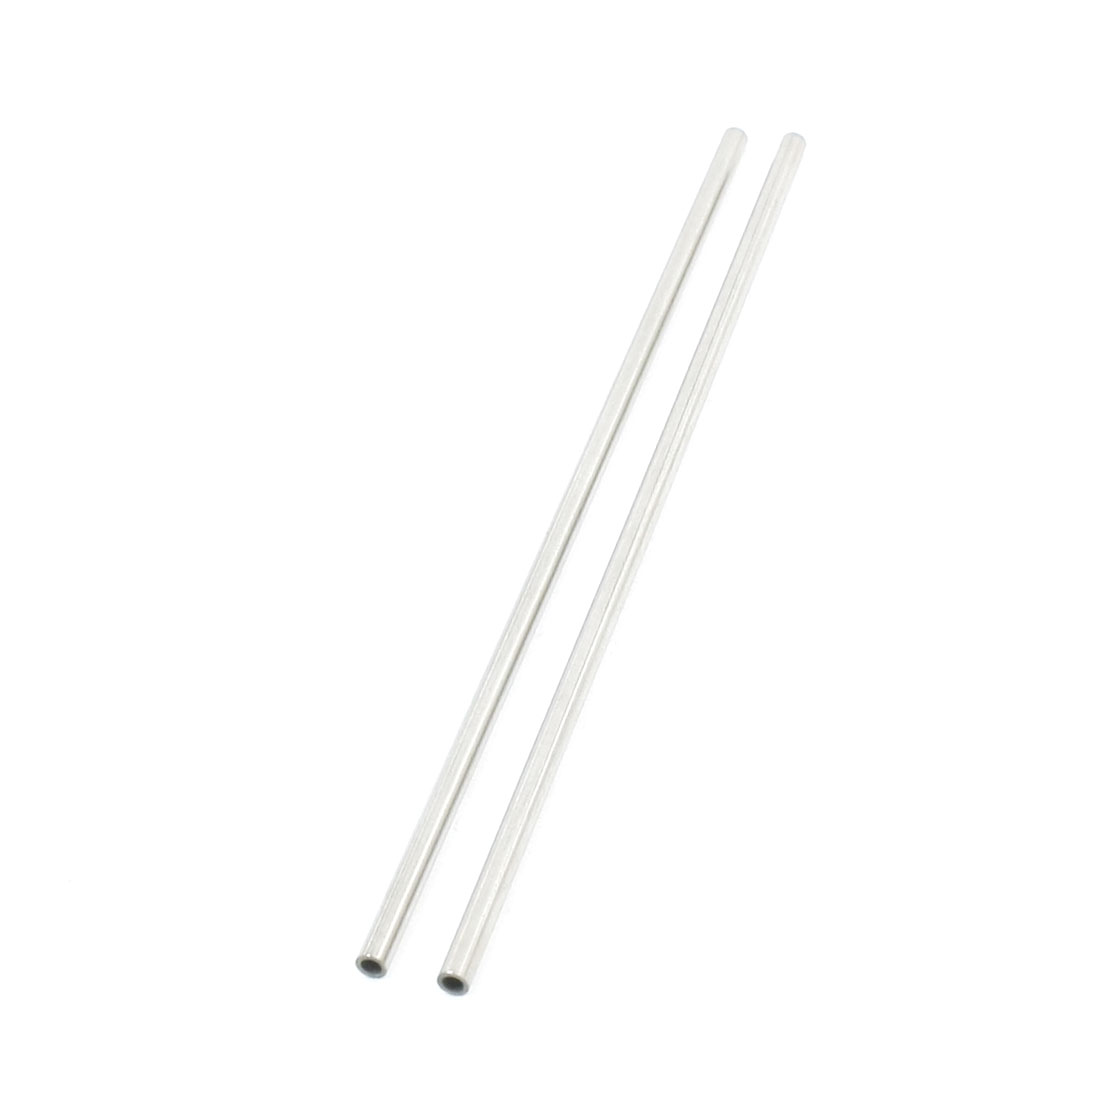 2pcs 3mm OD x 0.5mm Wall Stainless Steel Round Tubing Tube 130mm Long